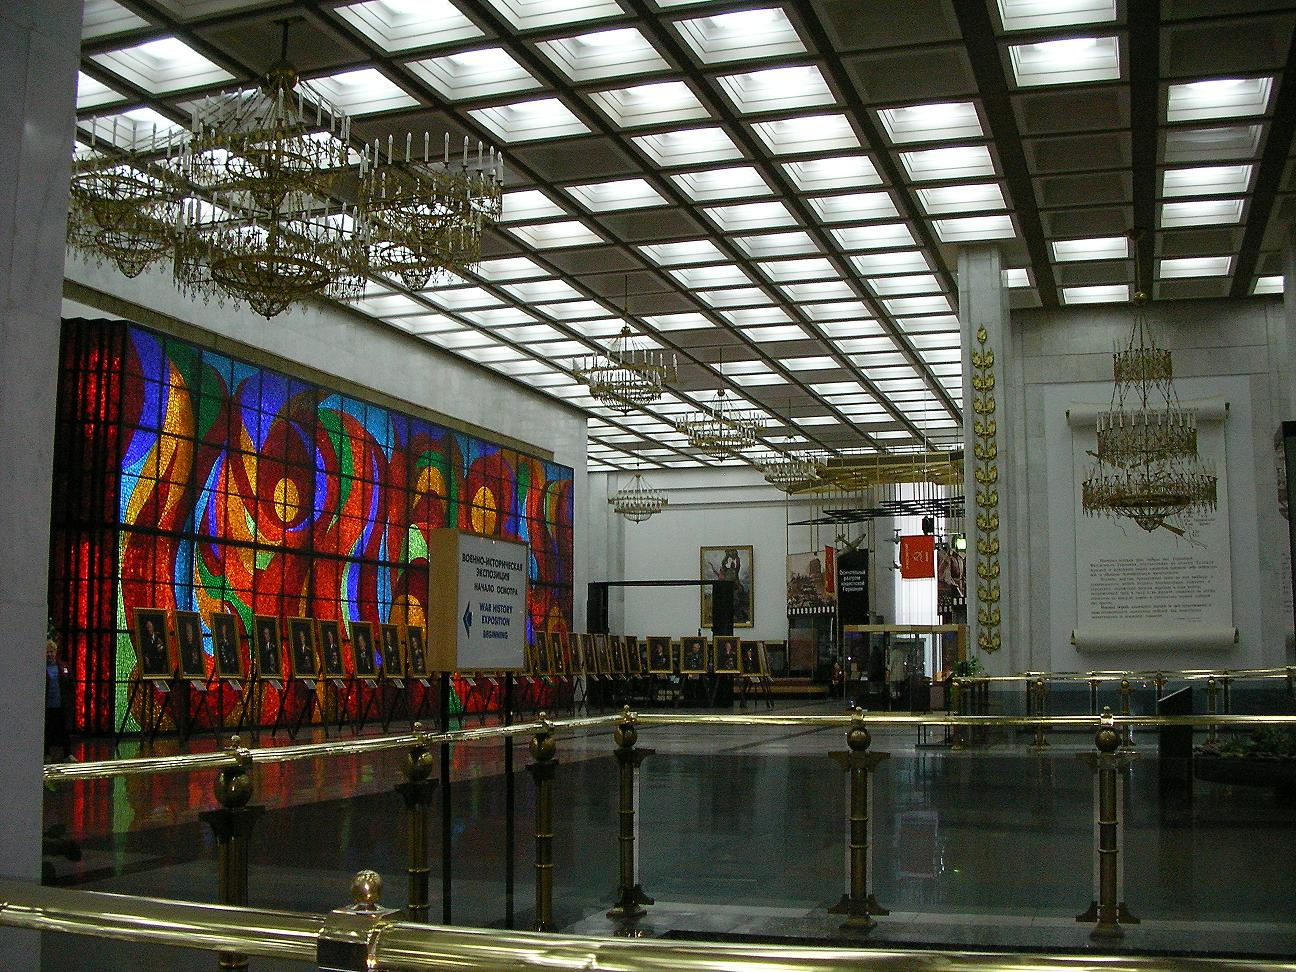 File:Museum of the Great Patriotic War interior.JPG & File:Museum of the Great Patriotic War interior.JPG - Wikimedia Commons